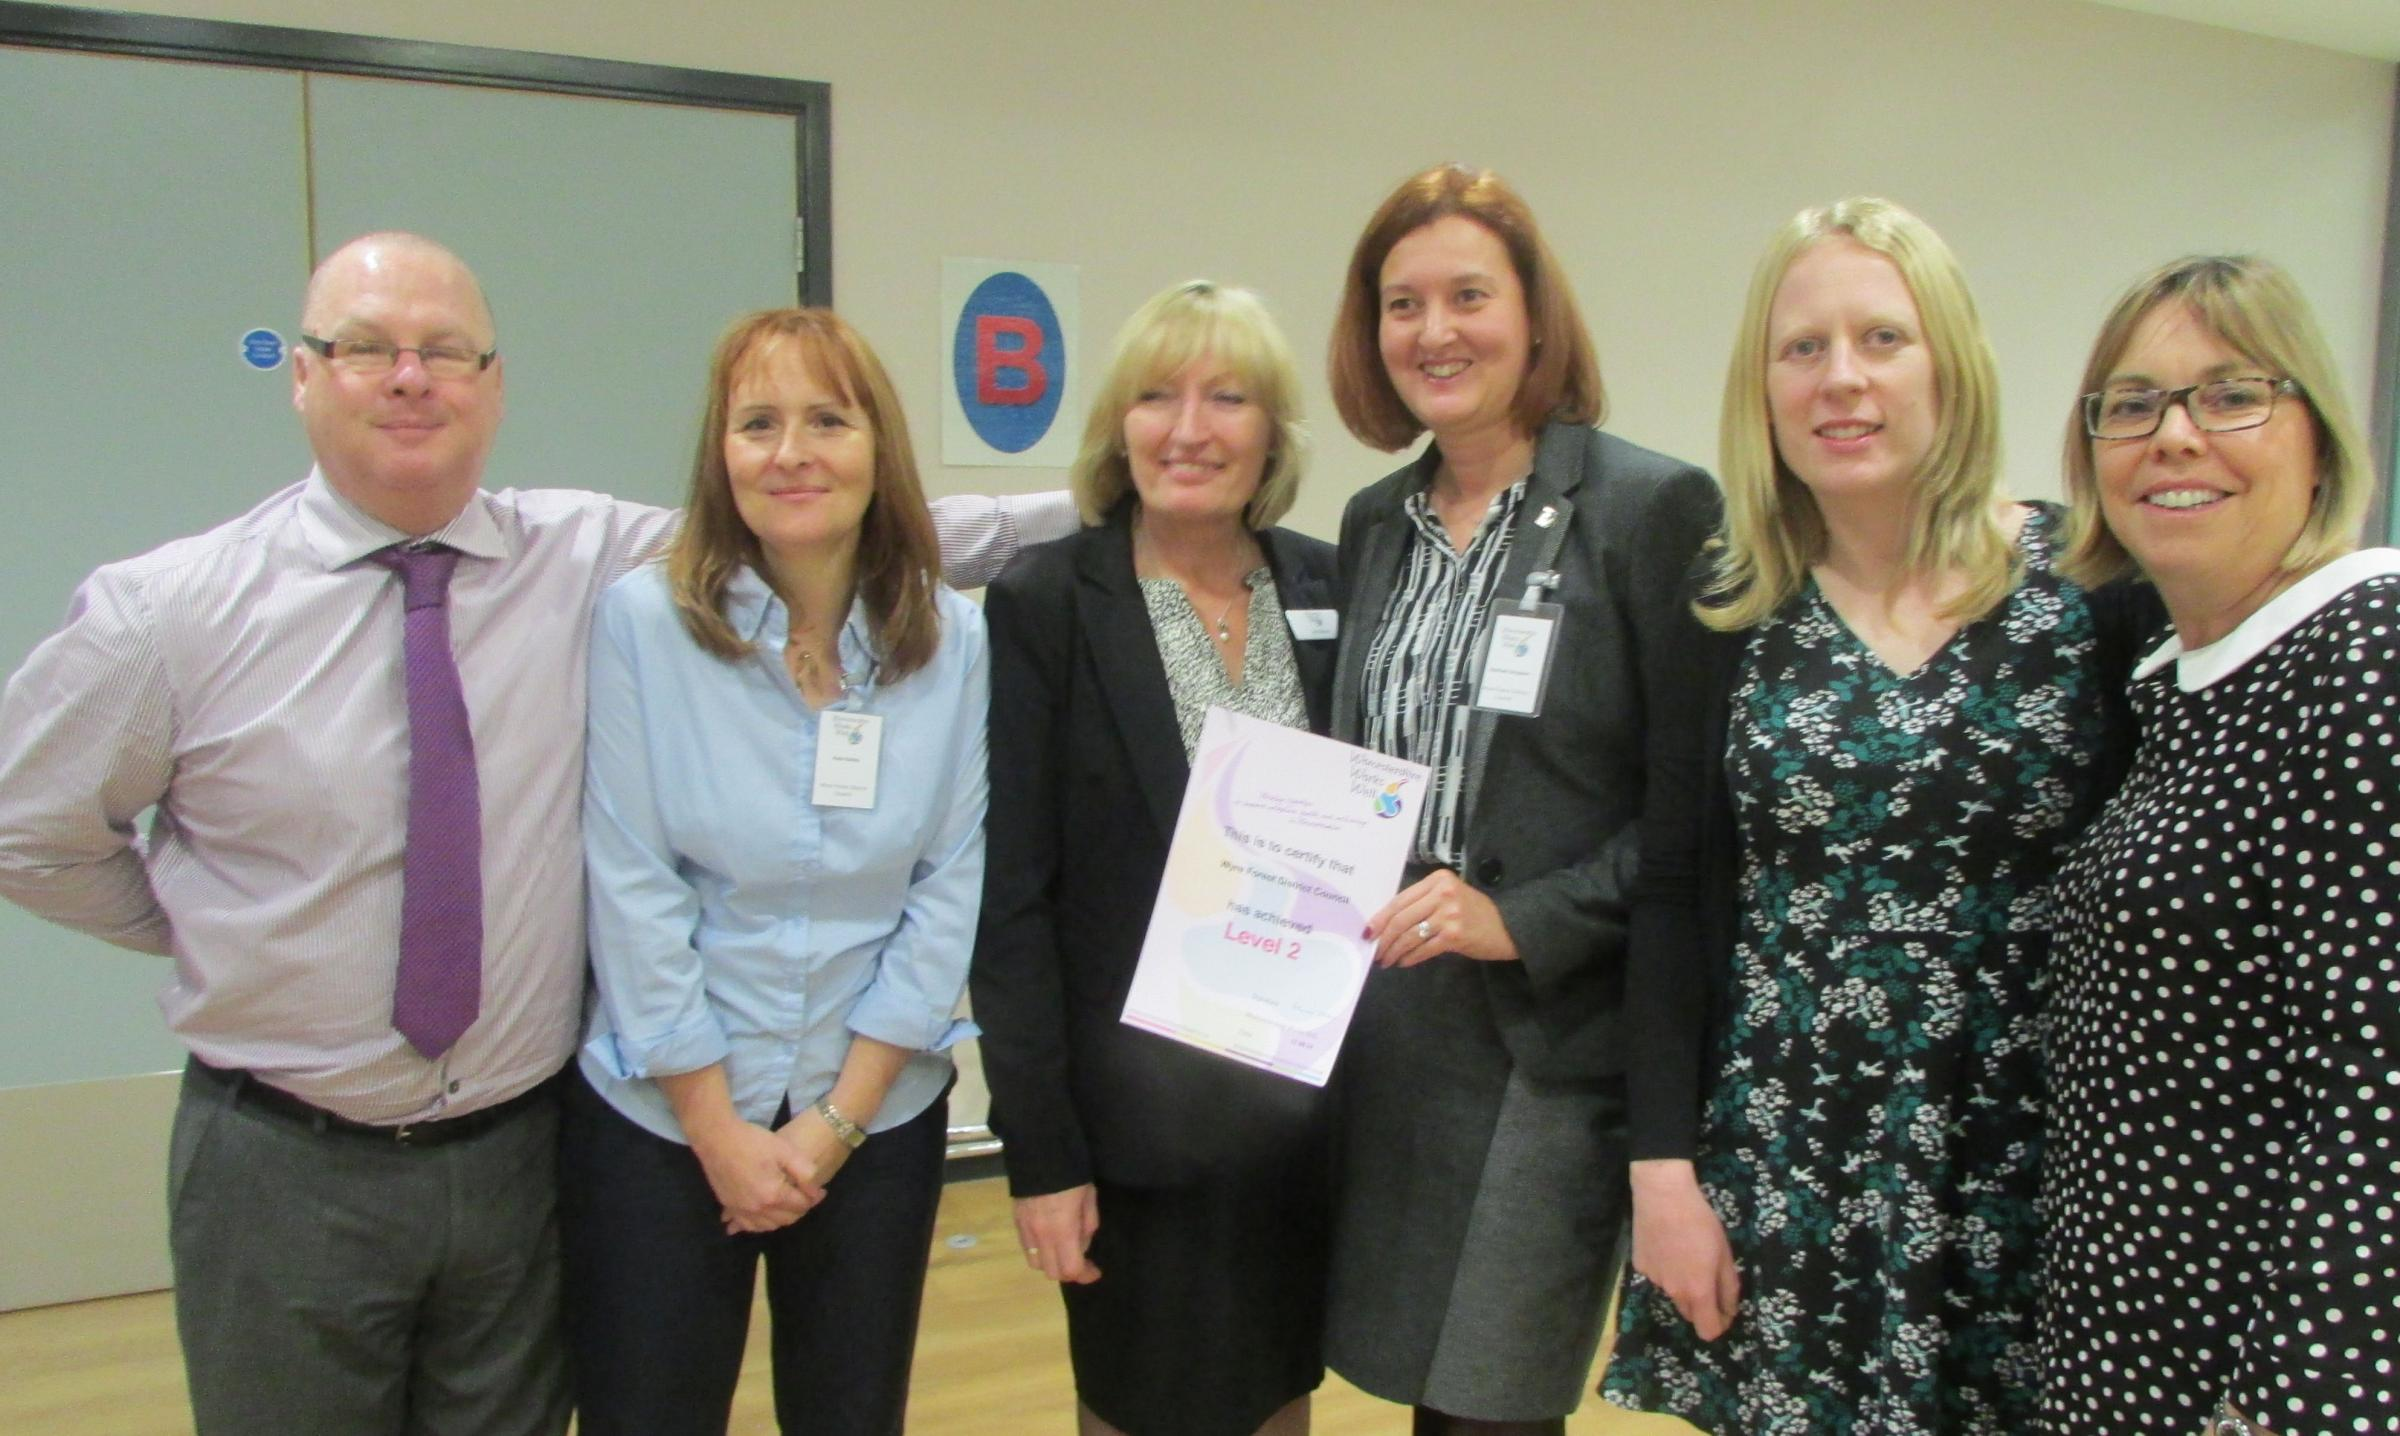 Healthy' council recognised with award | Kidderminster Shuttle